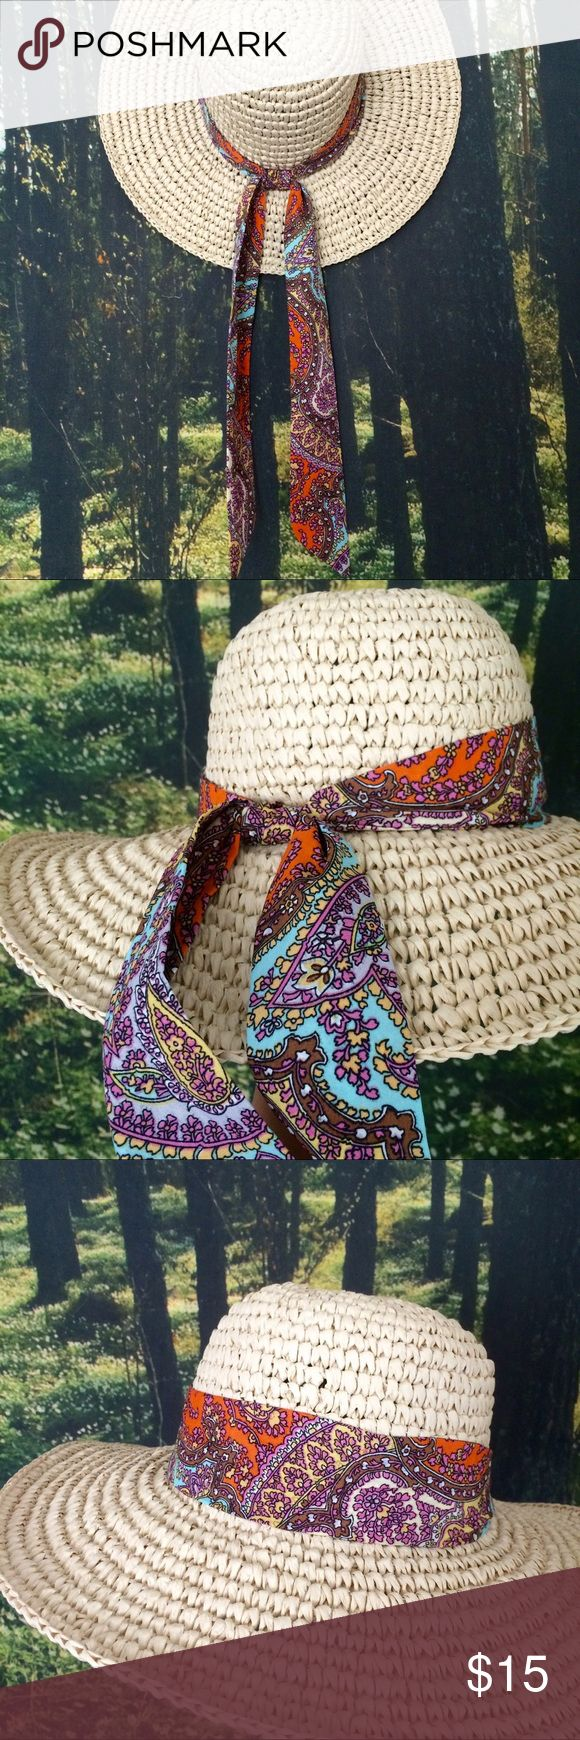 """Boho Straw Hat Flexible straw hat with a tied-on paisley bohemian scarf. Perfect for a day at the beach or a summer morning in your garden. One size fits most.   👉🏽$5.00 SHIPPING ON DEPOP--check """"About"""" for link. Accessories Hats"""